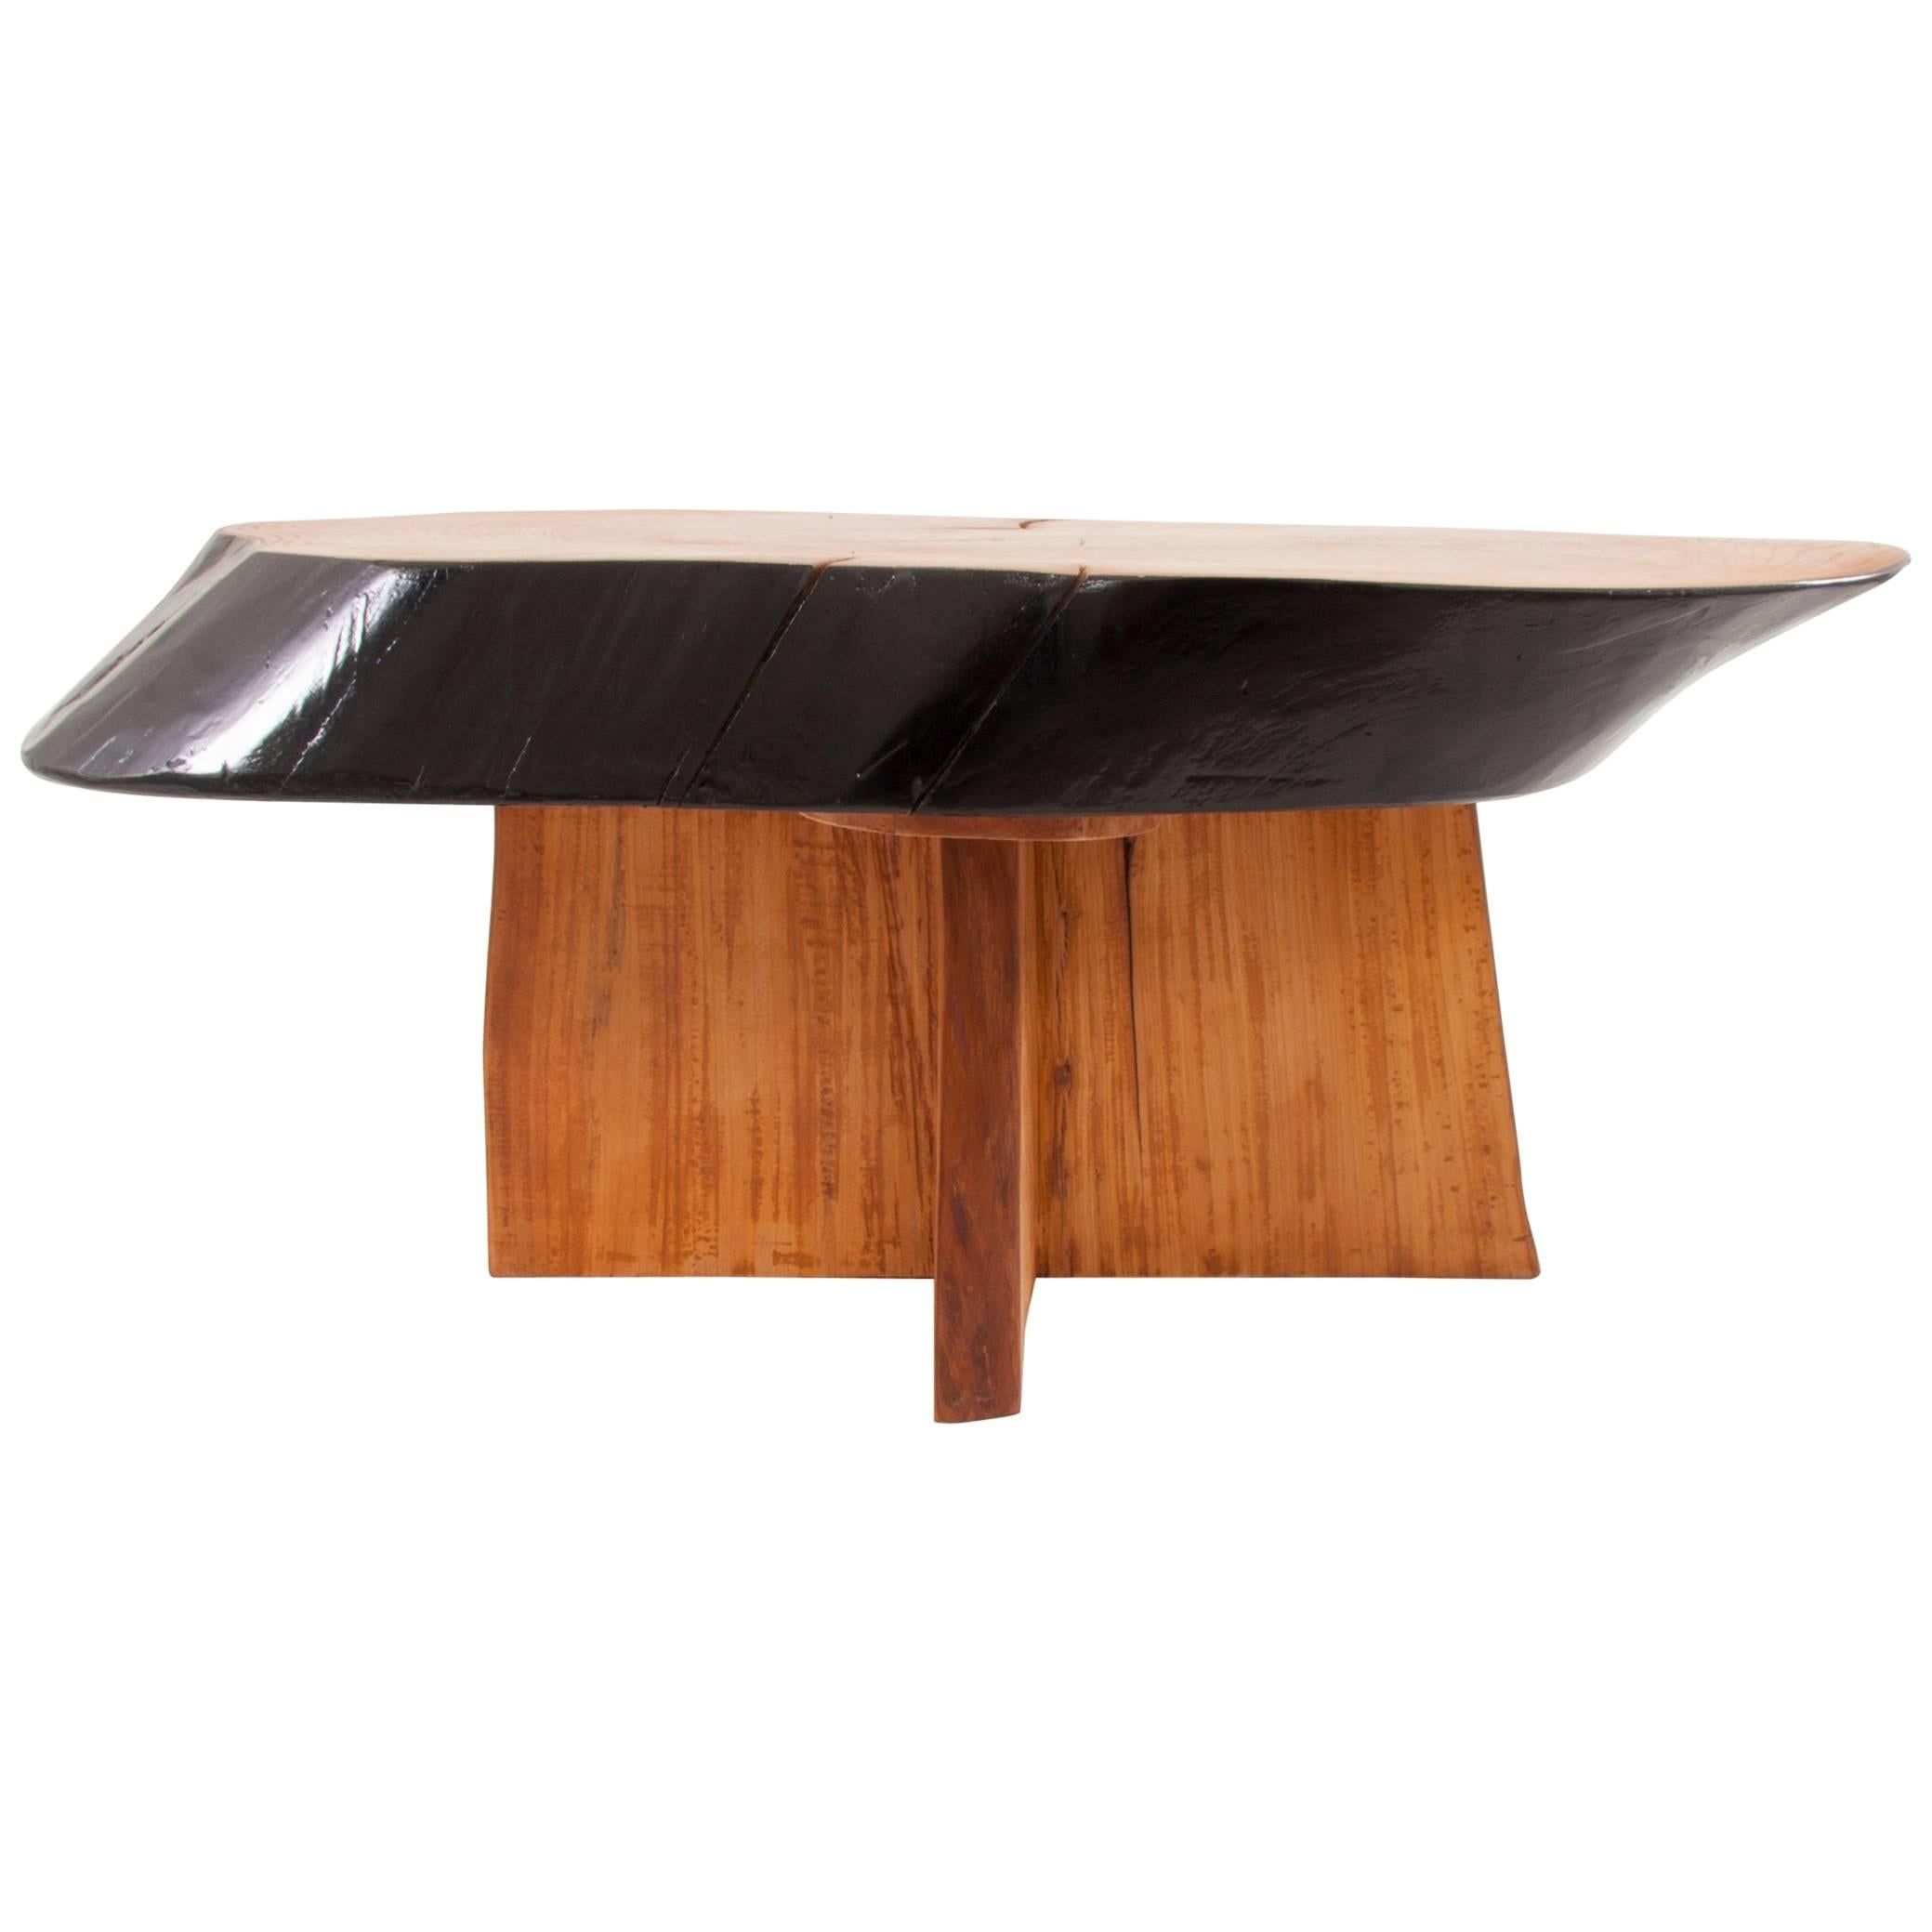 Impressive Maple Tree Trunk Coffee Table In The Style Of George Nakashima 1950s